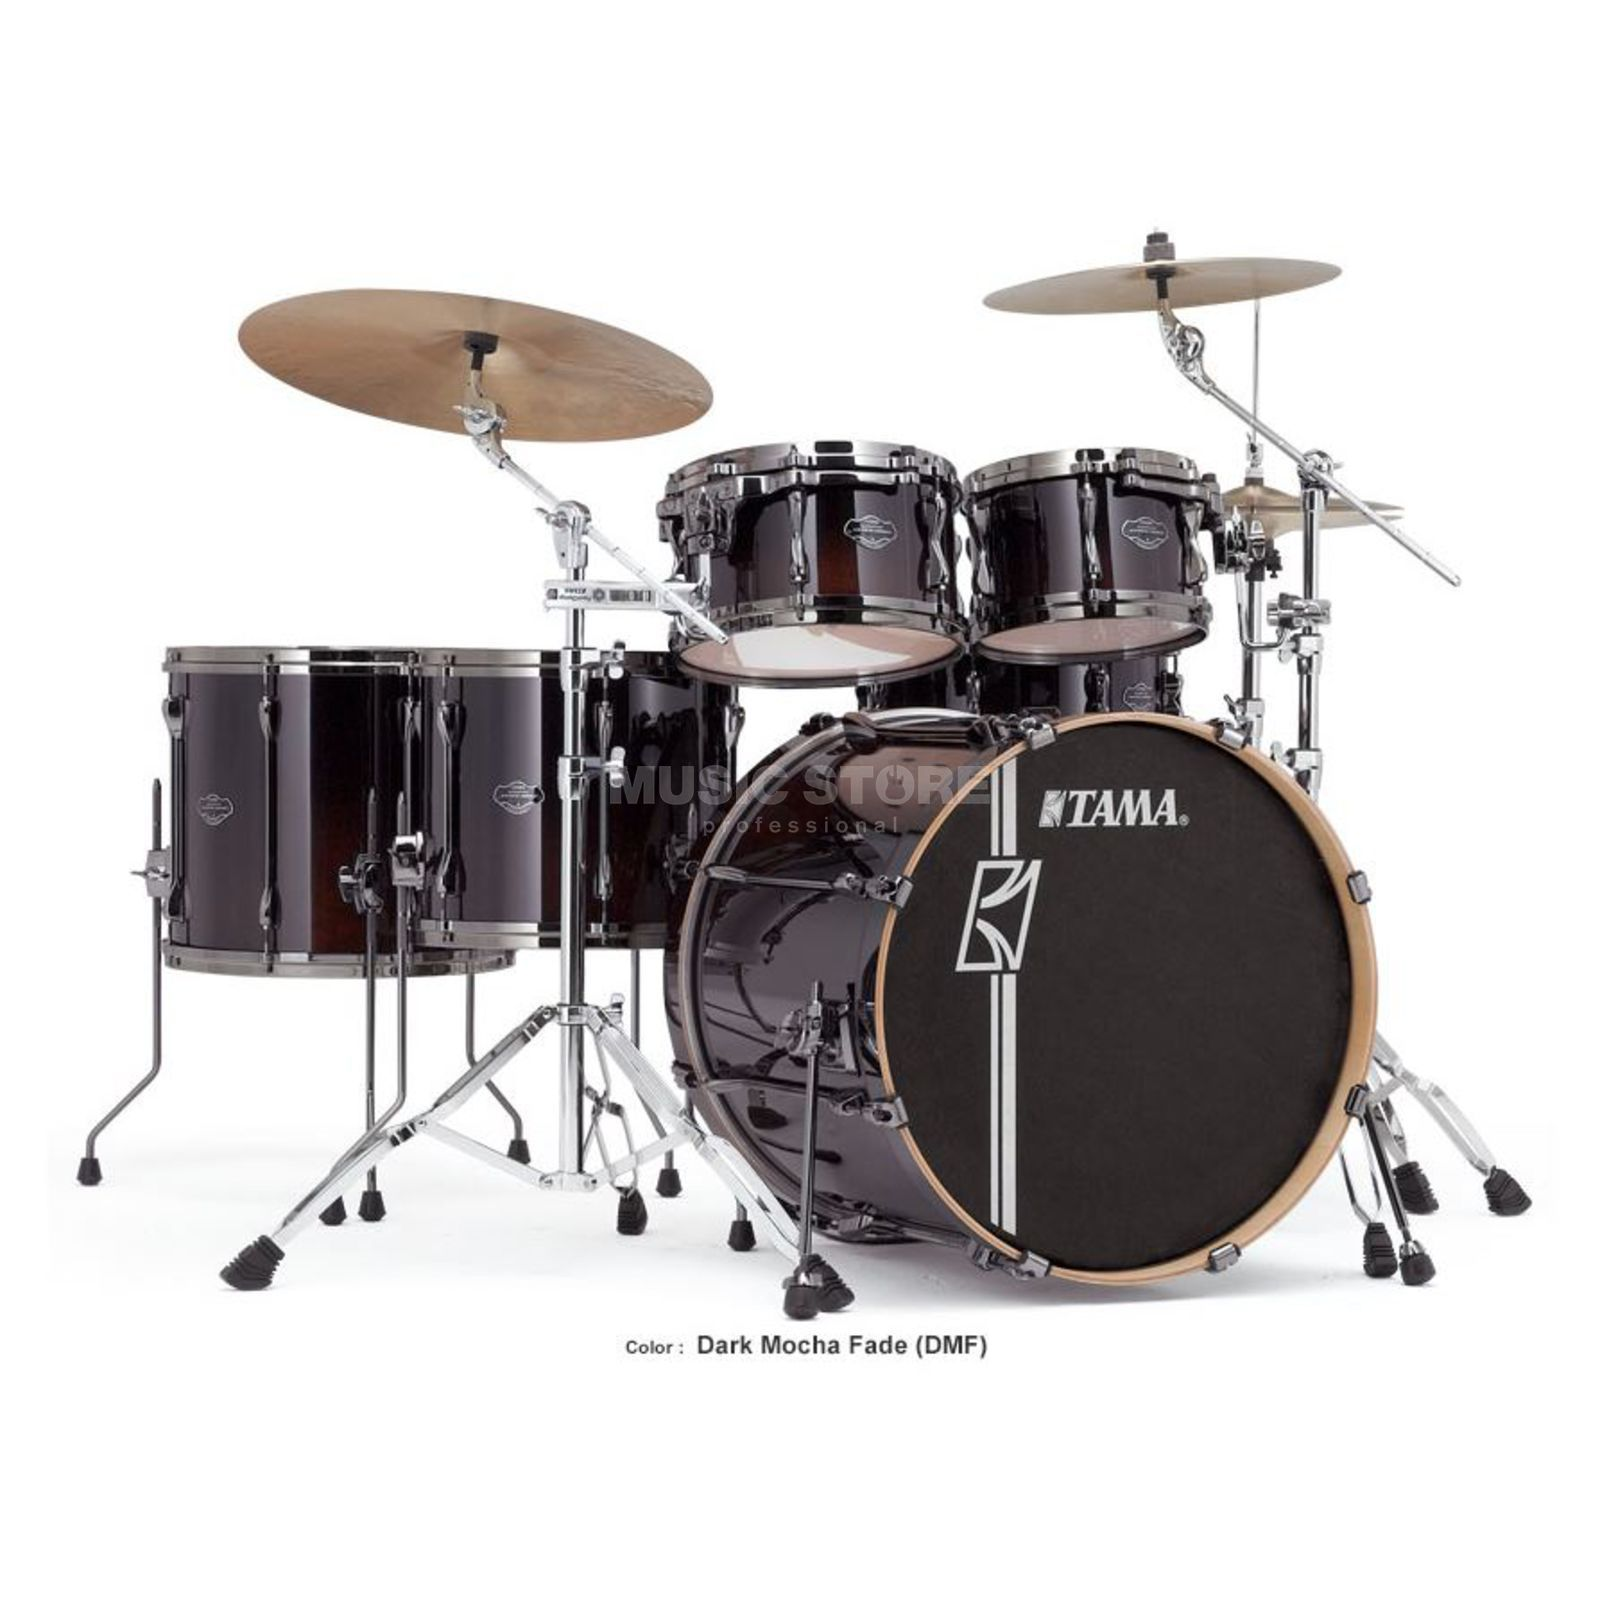 Tama Superstar HD Maple ML52HZBN, Dark Mocha Fade, DMF Imagem do produto